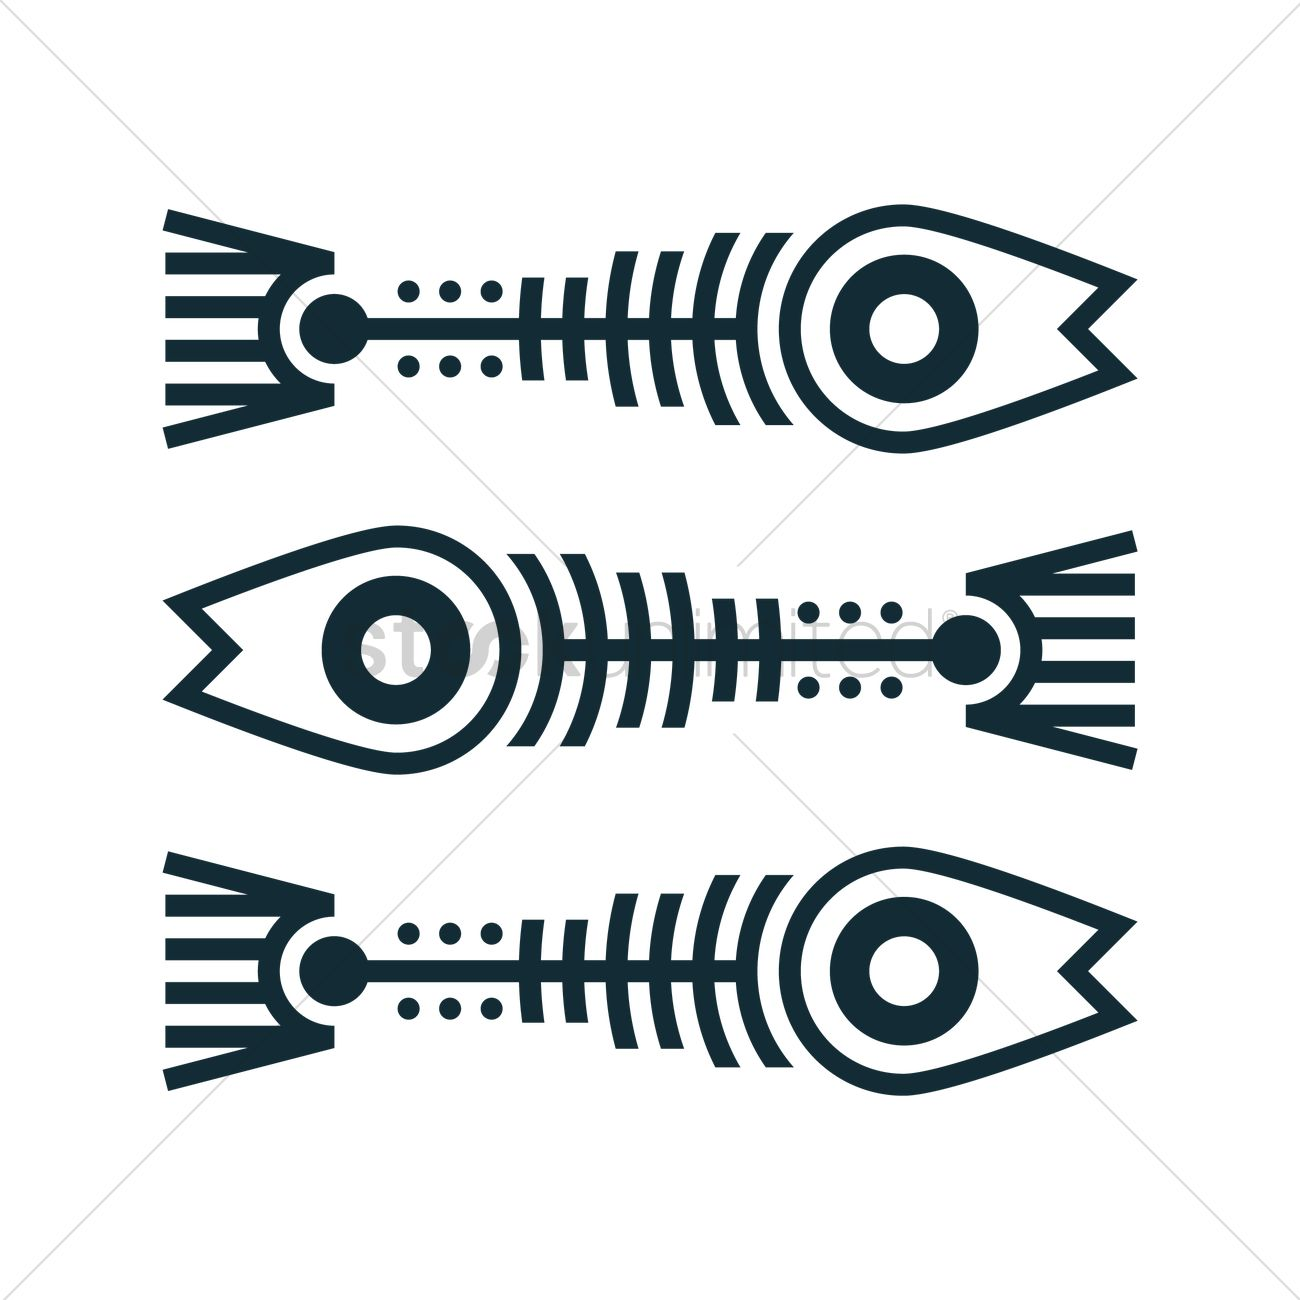 fish bone tattoo vector image 1443573 stockunlimited rh stockunlimited com fishbone tattoo meaning fishbone tattoo